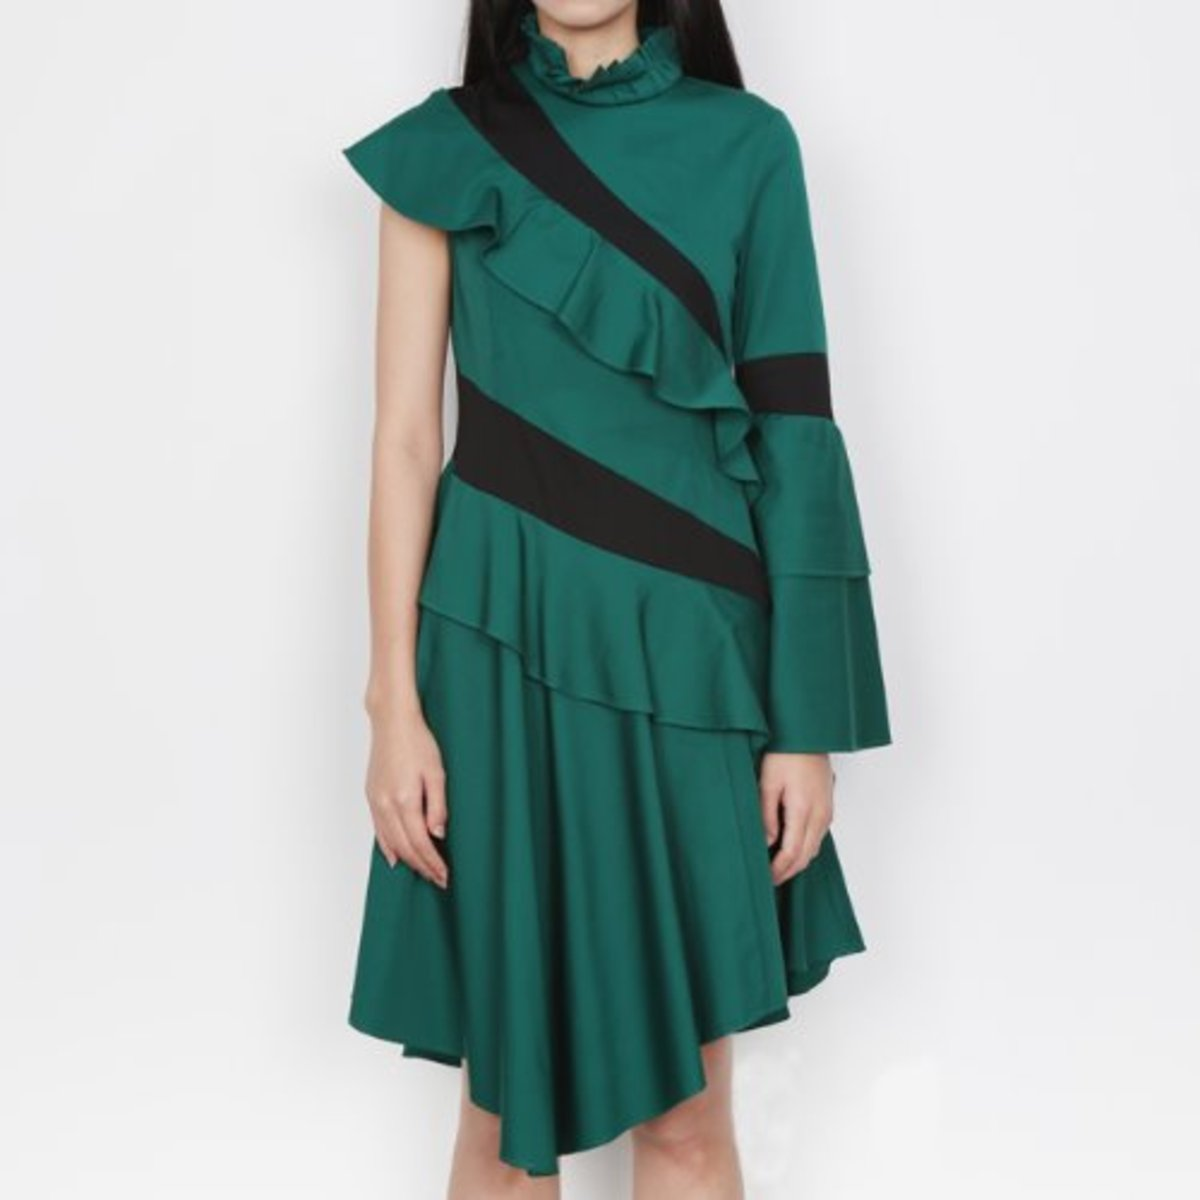 GREEN ASYMMETRY DRESS